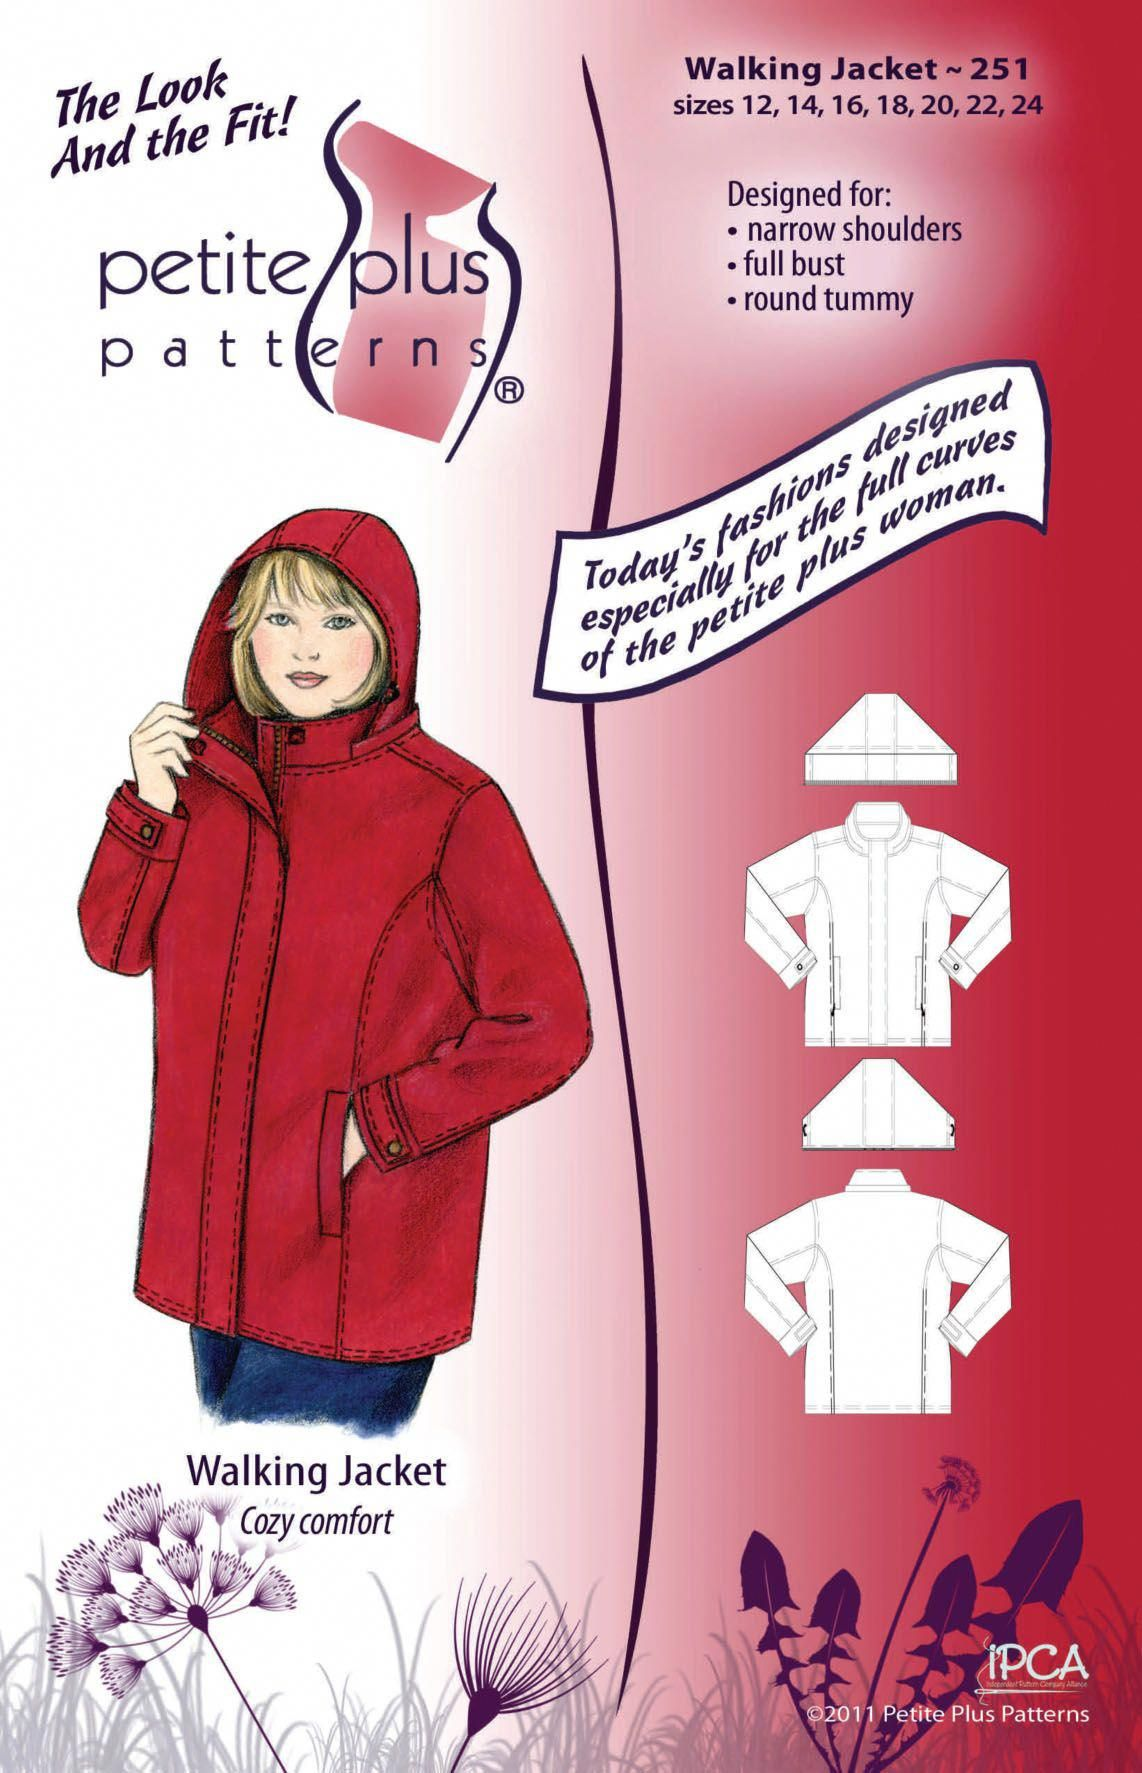 Purchase Petite Plus Patterns 251 Walking Jacket and read its pattern reviews. Find other Coat/Jacke...